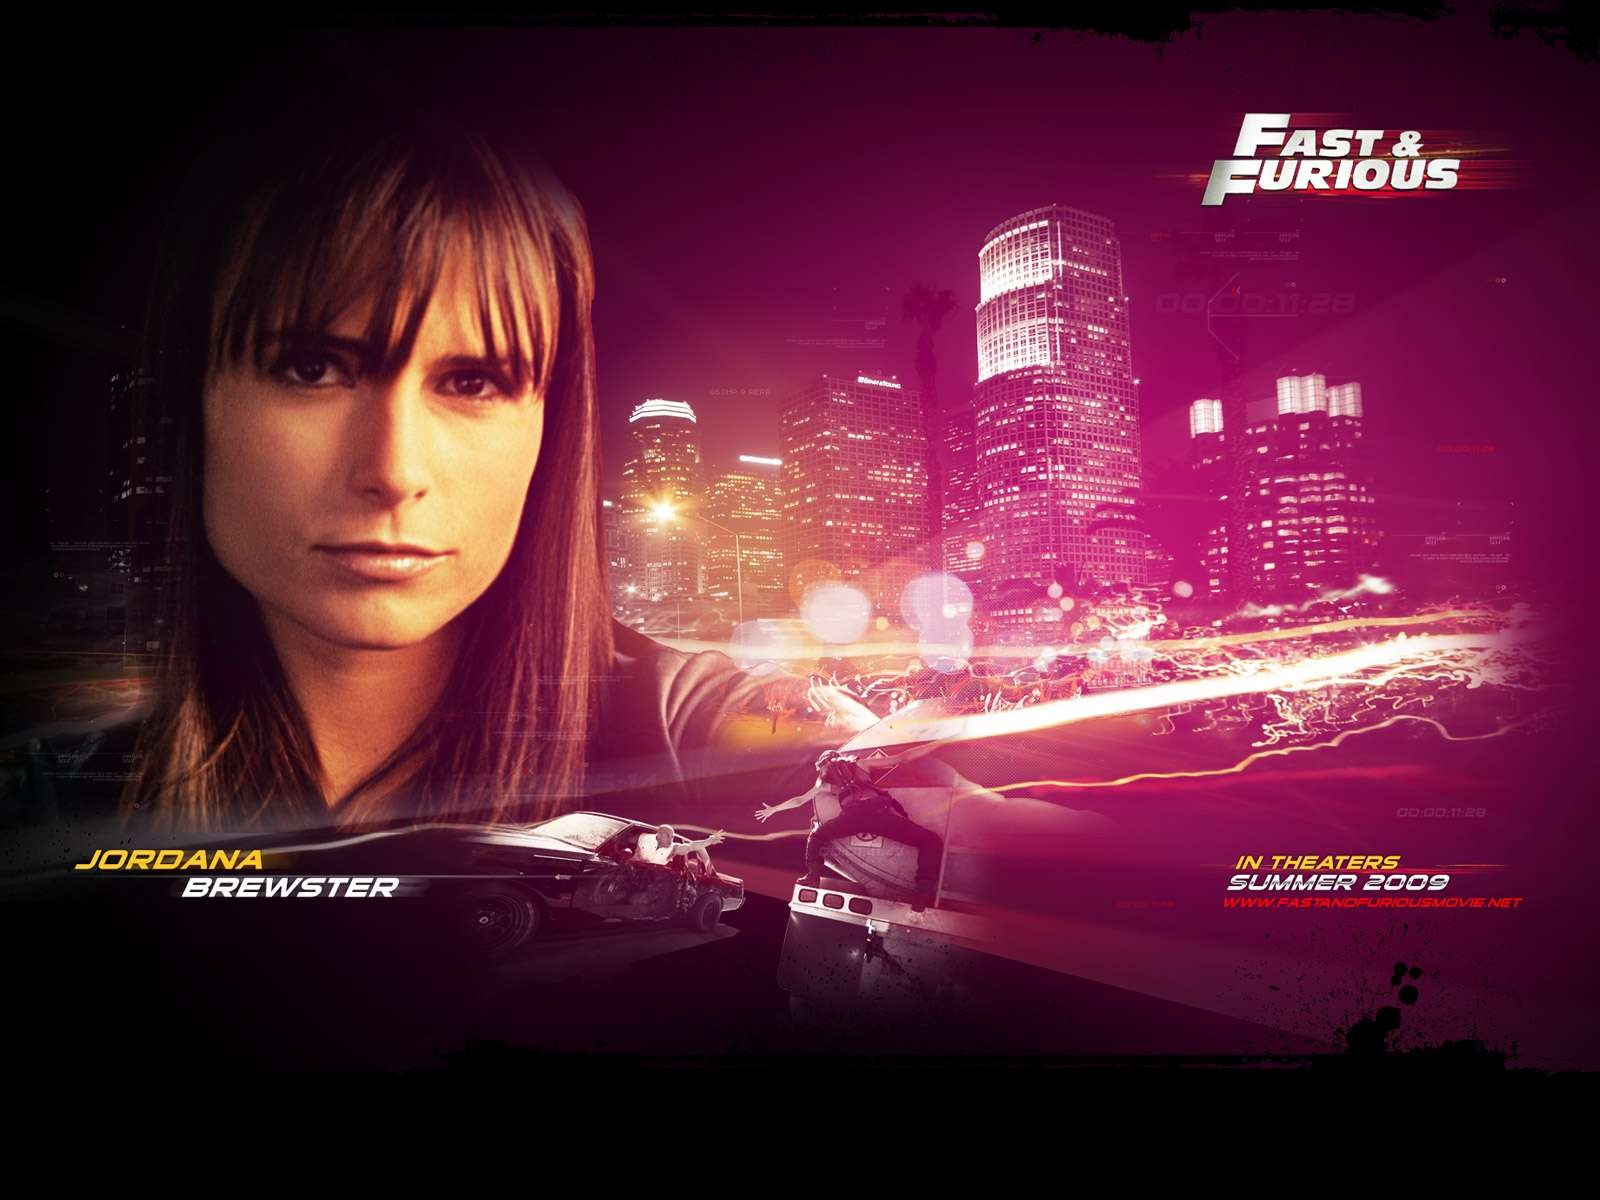 Un wallpaper del film Fast and Furious - Solo parti originali con Jordana Brewster